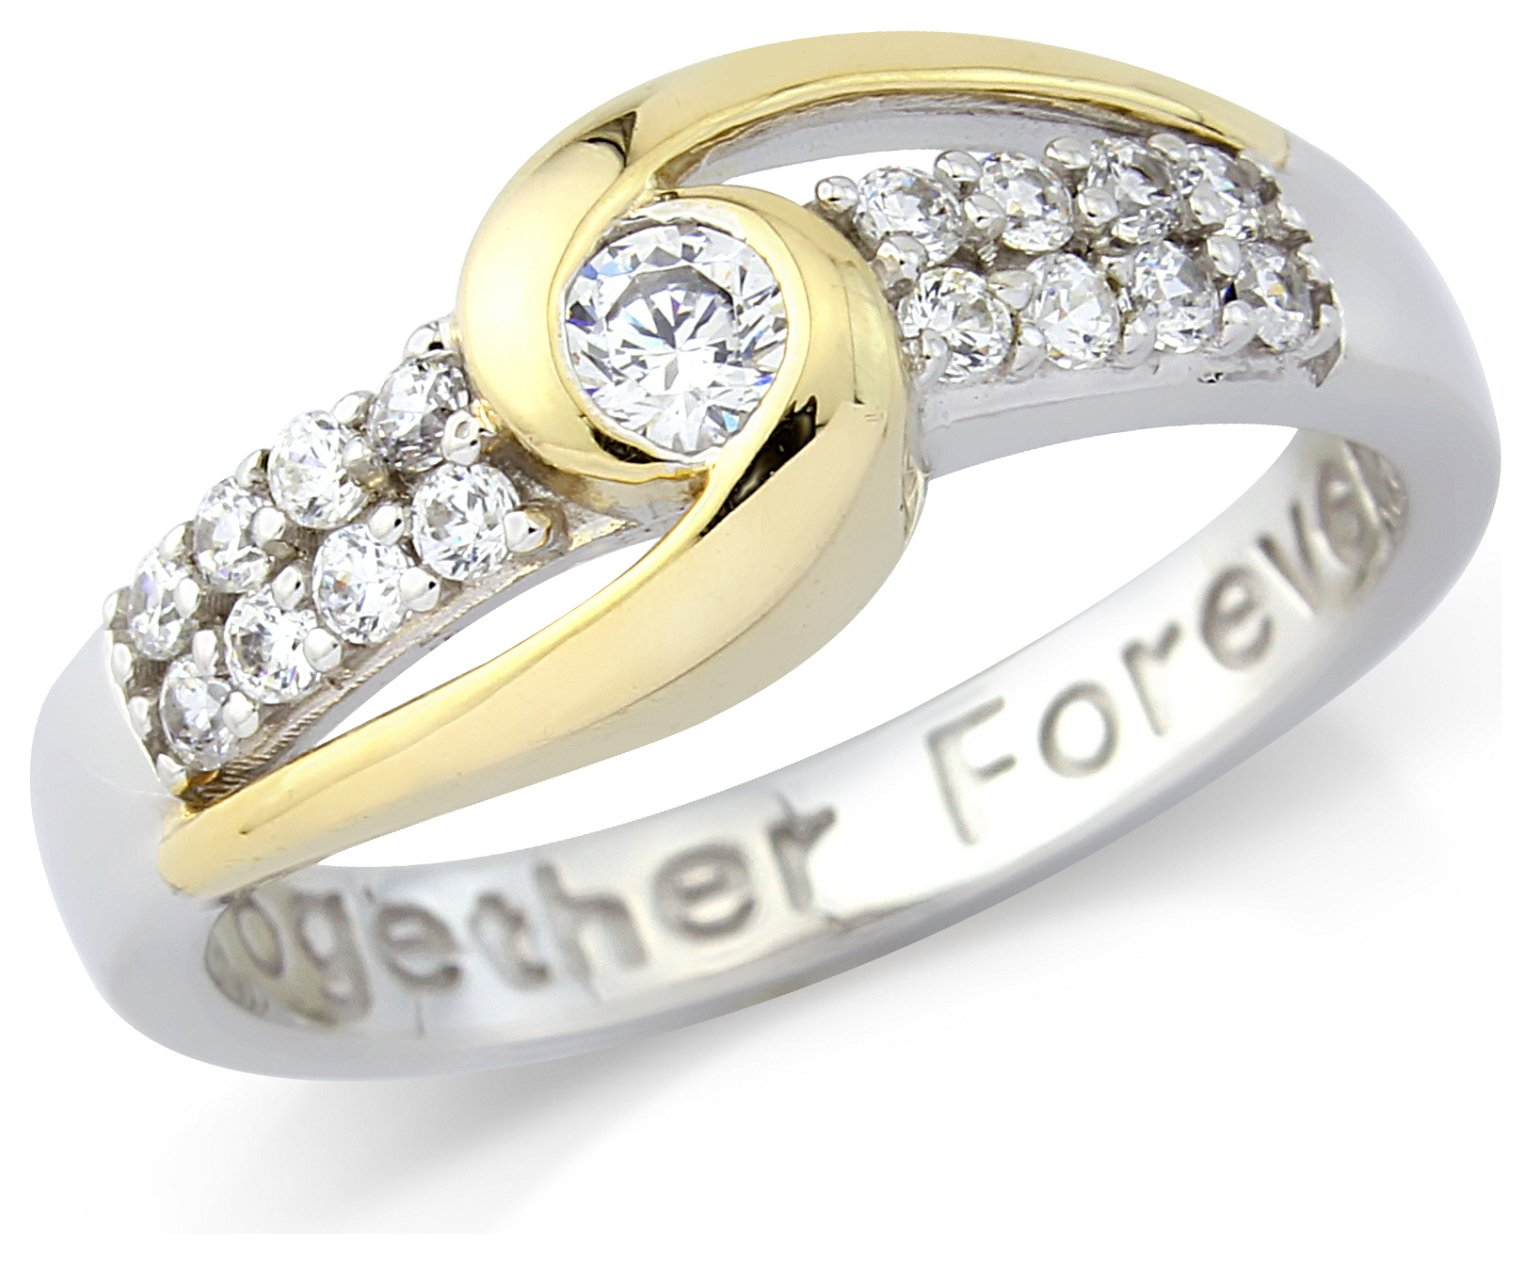 Image of Gold Plated Silver 'Together Forever' Ring - P